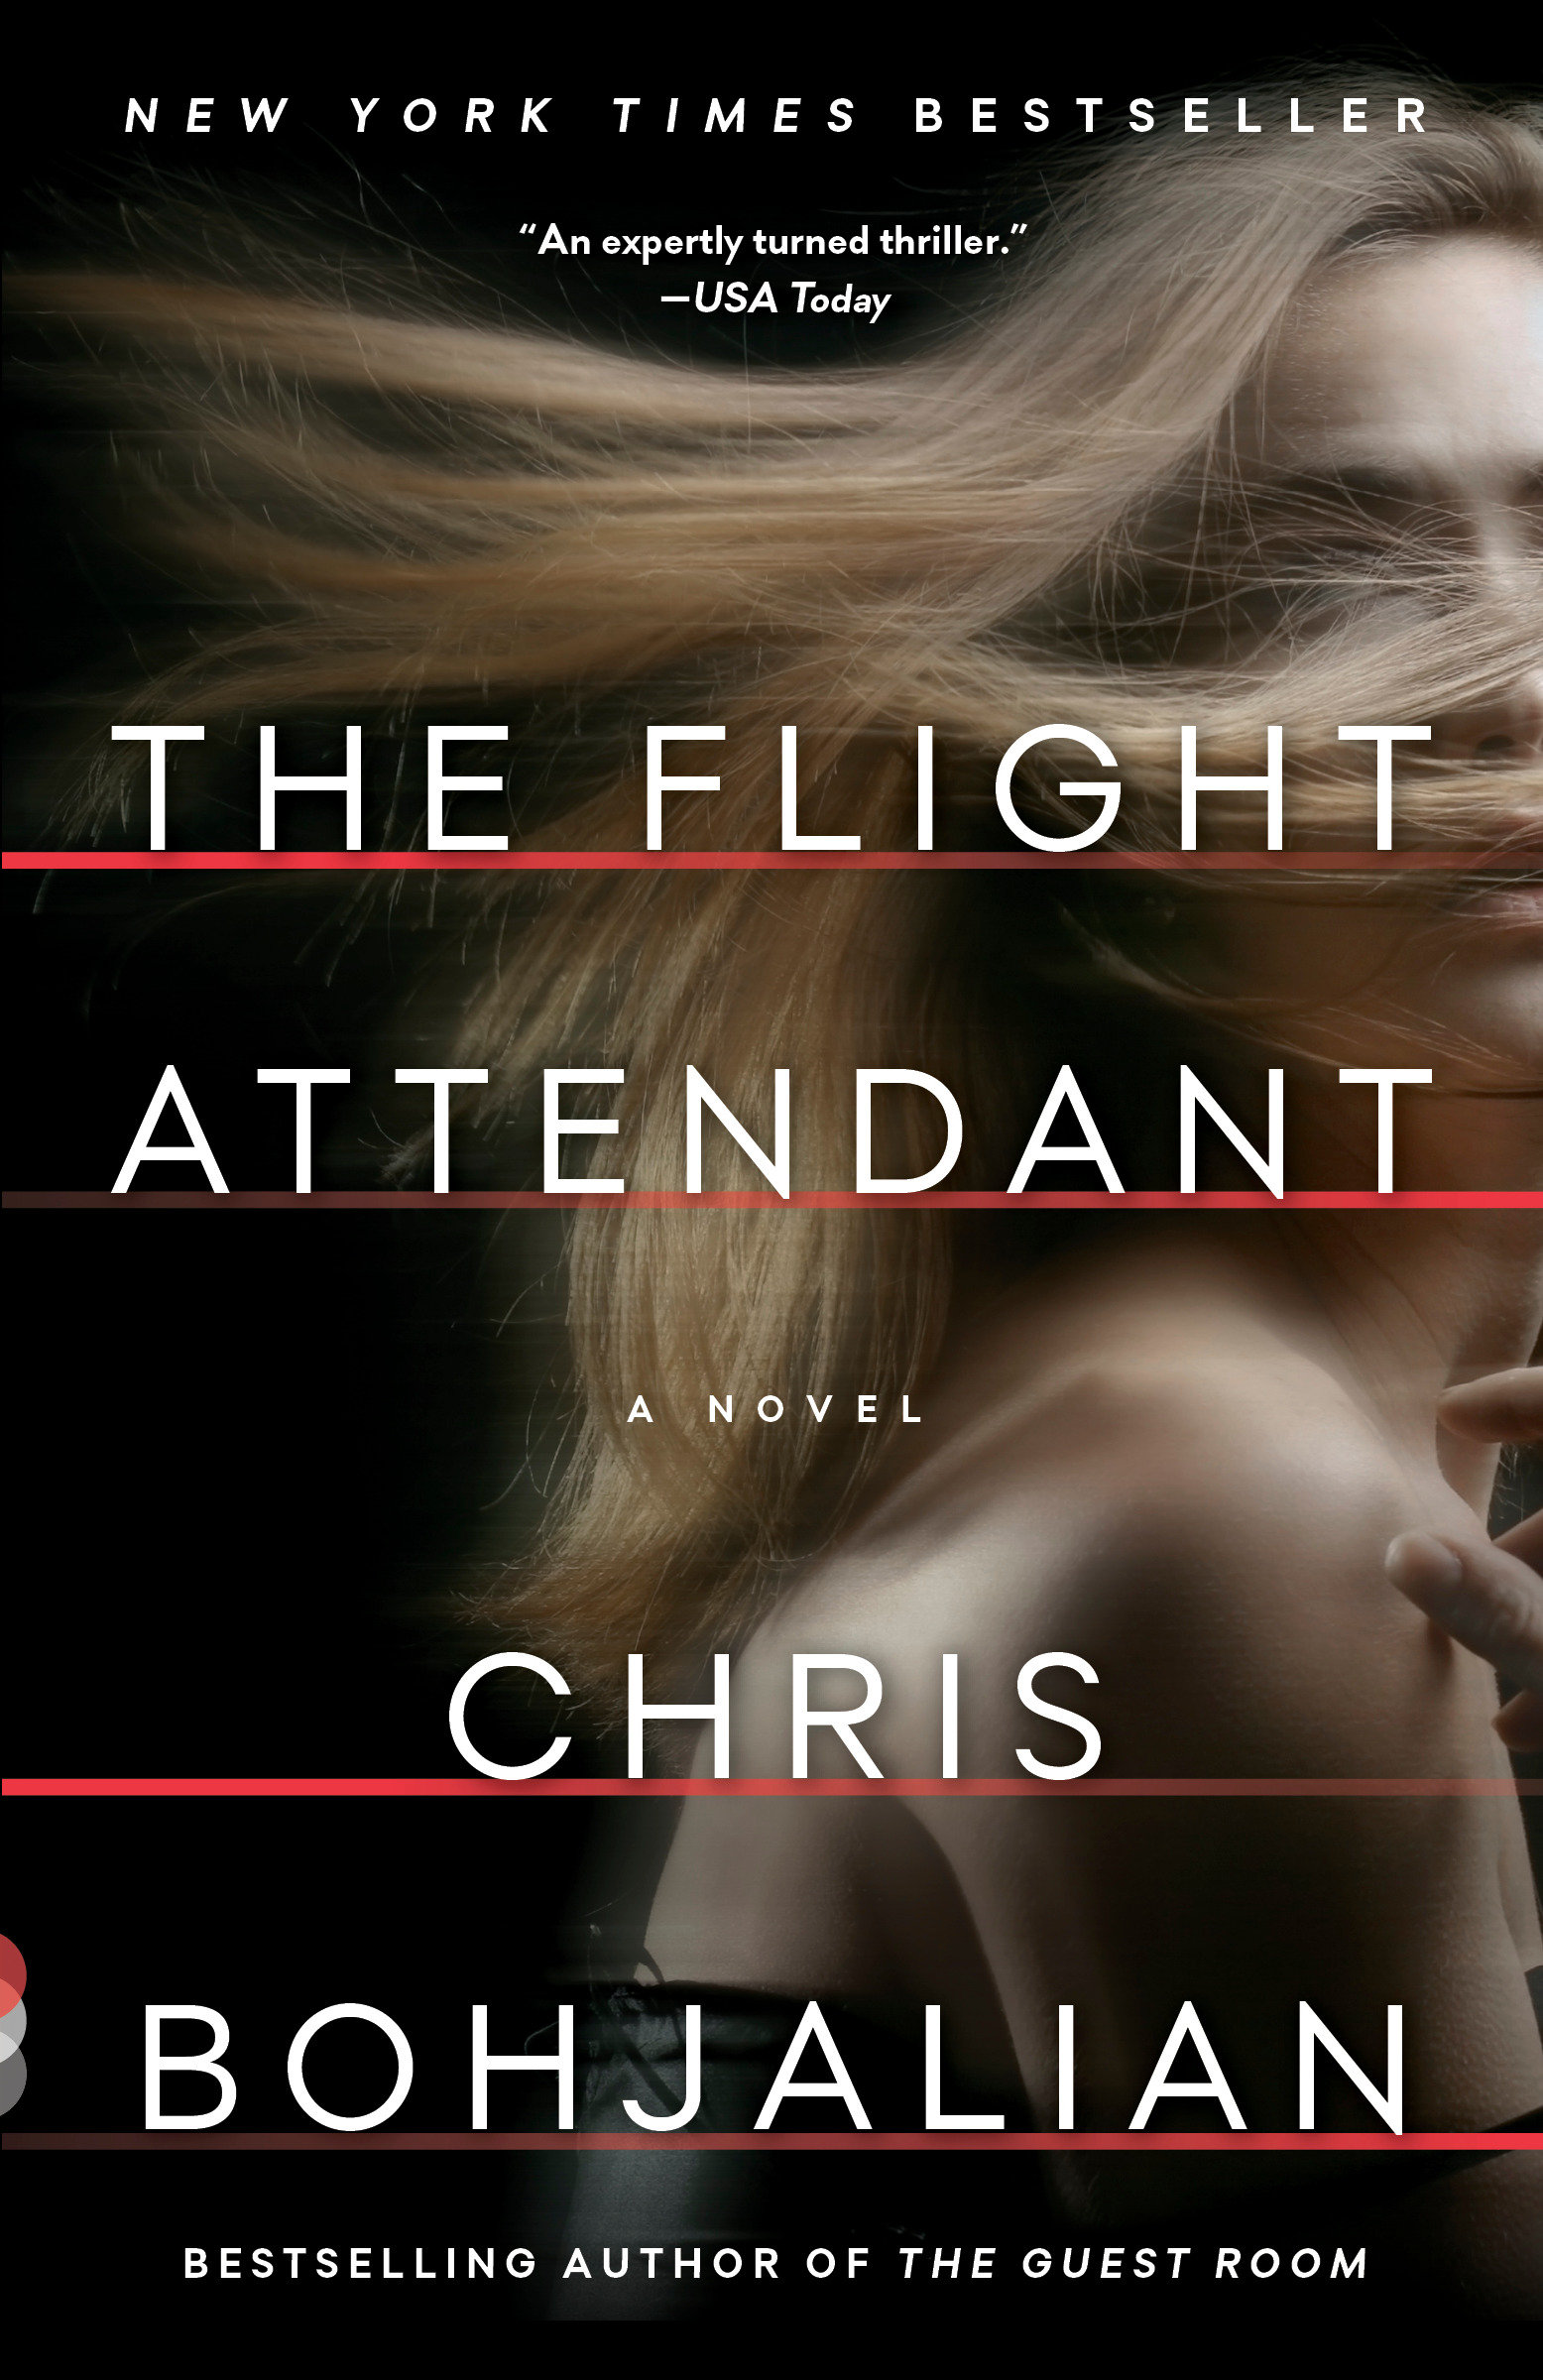 The Flight Attendant a novel